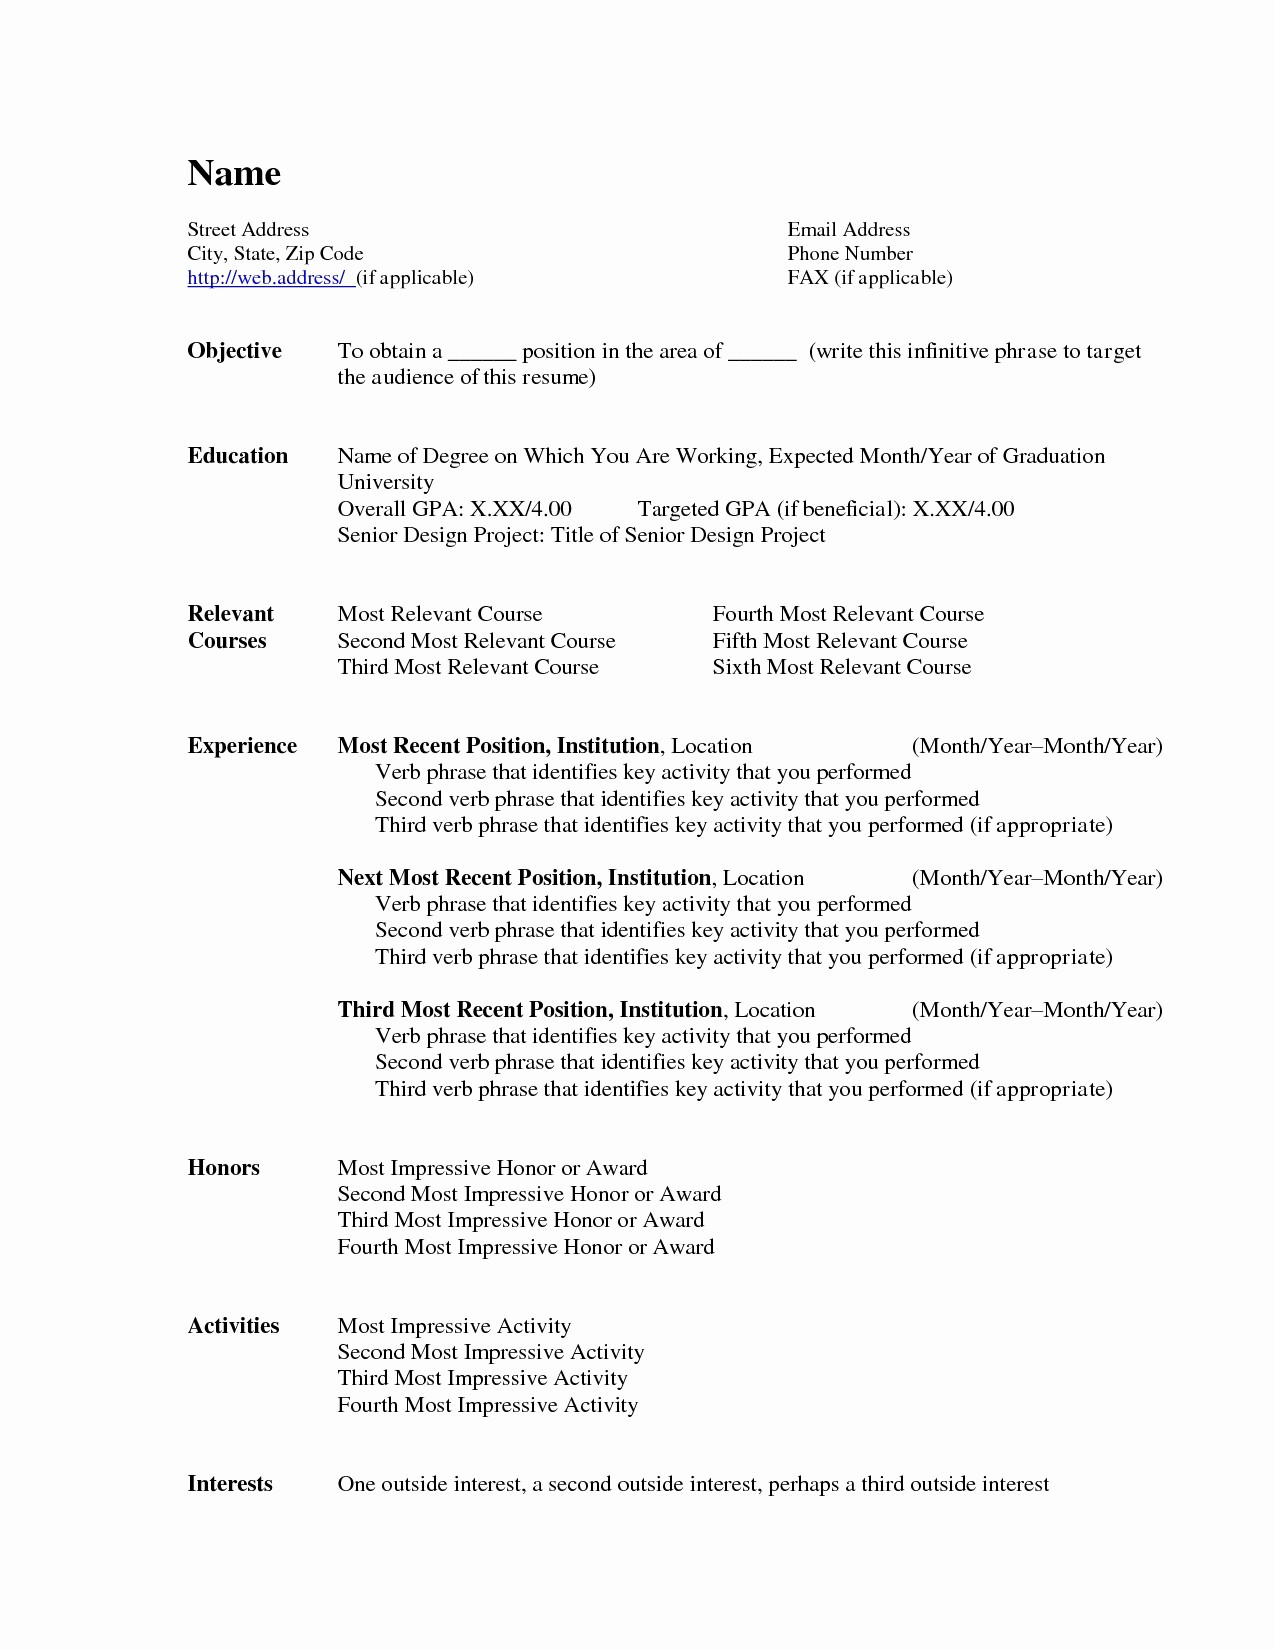 Ms Word Templates for Resumes Awesome Microsoft Word Resume Templates Beepmunk